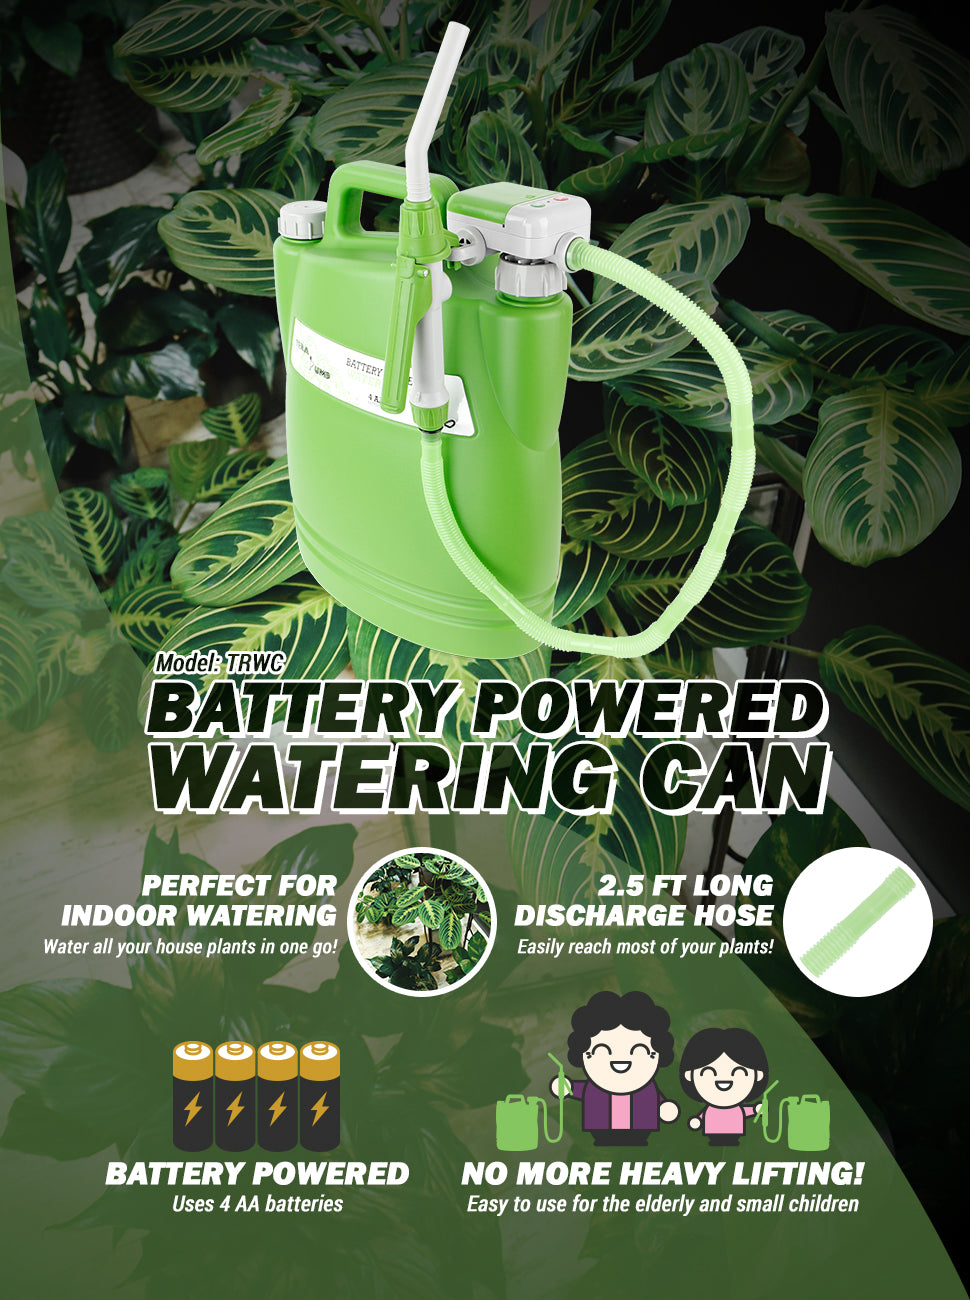 TeraPump - TRWC-S - Battery Powered Watering Can 2.5FT Hose - BRS Super Pumps